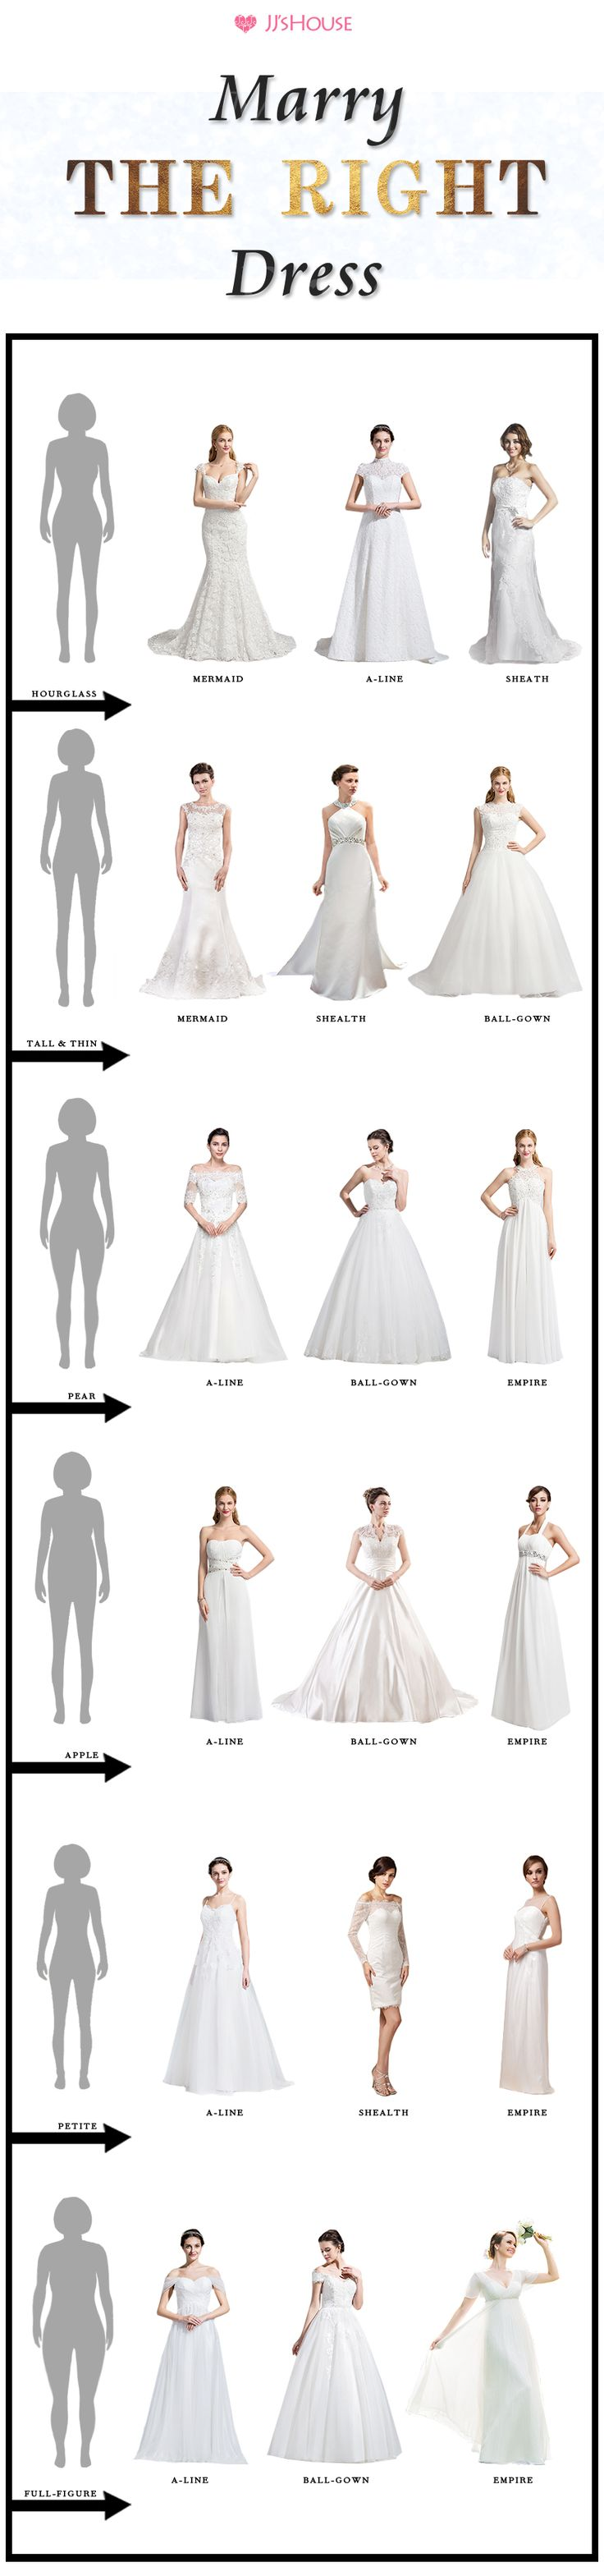 Marry the Right Dress, find the perfect dress for your body type, Petite, Tall, Apple-Shaped? Pear? Hour-glass? We have your dream gown for your big day!